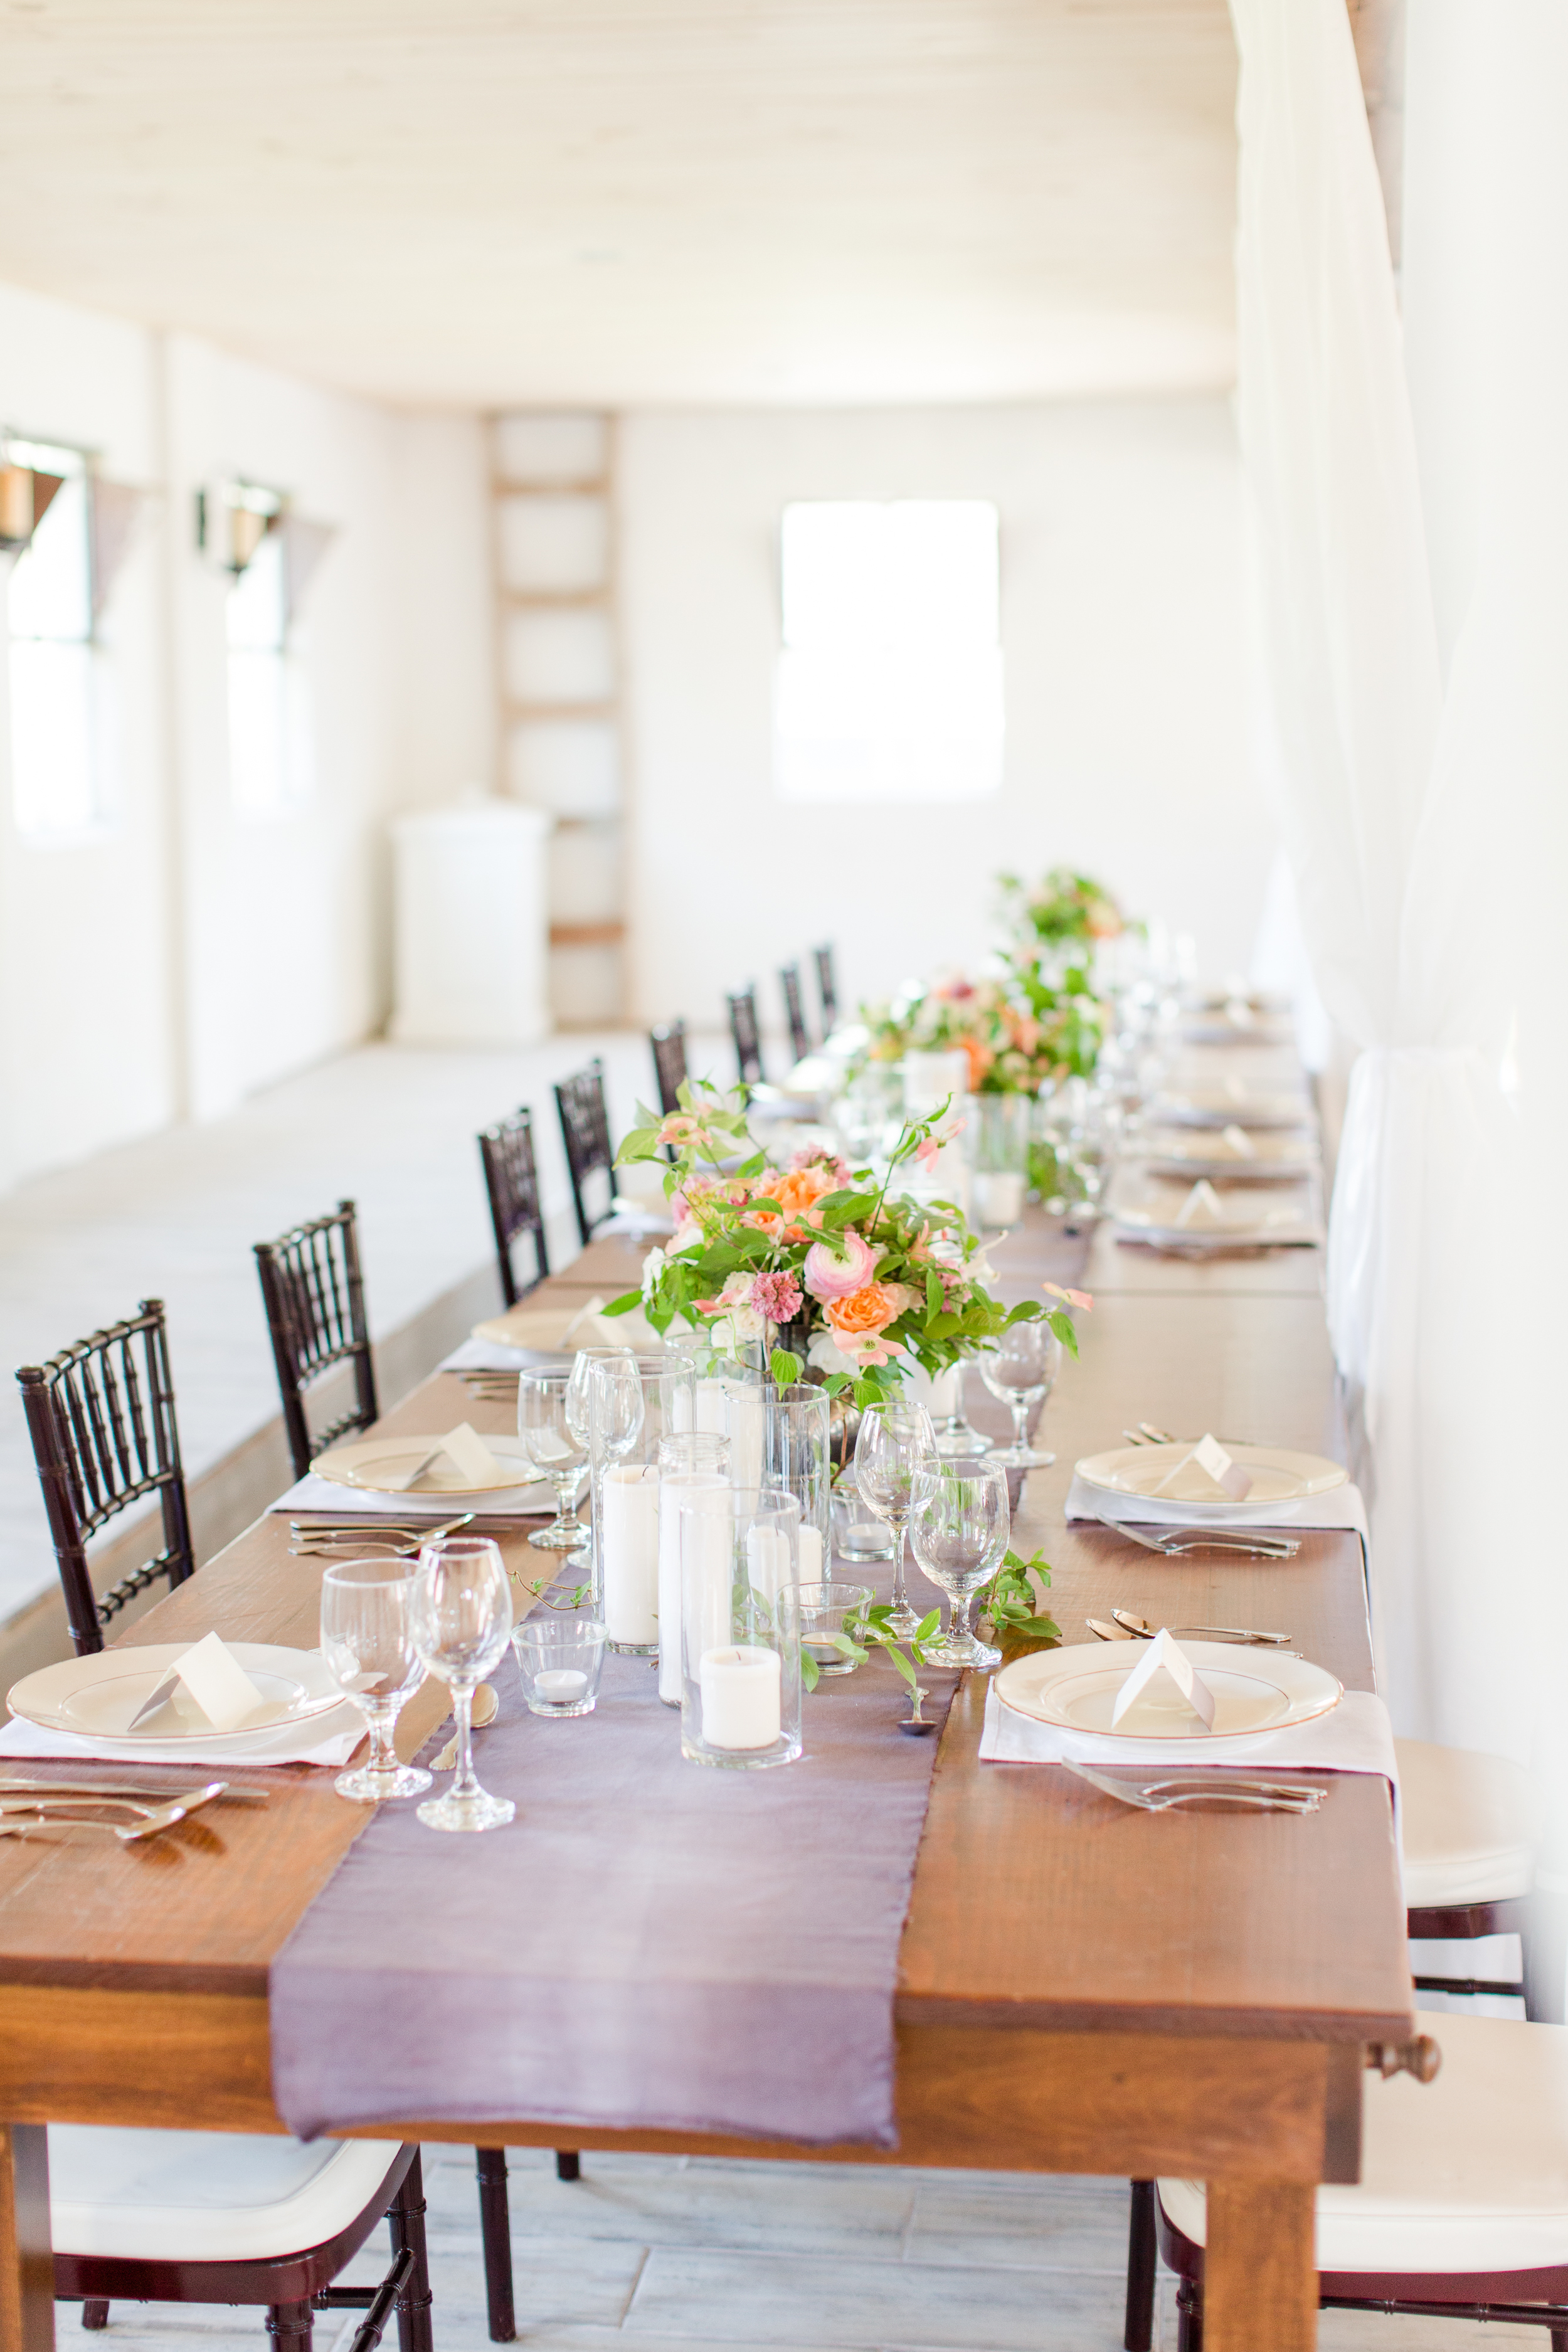 Genevieve used cylinder vases and candles to create an enchanting setting